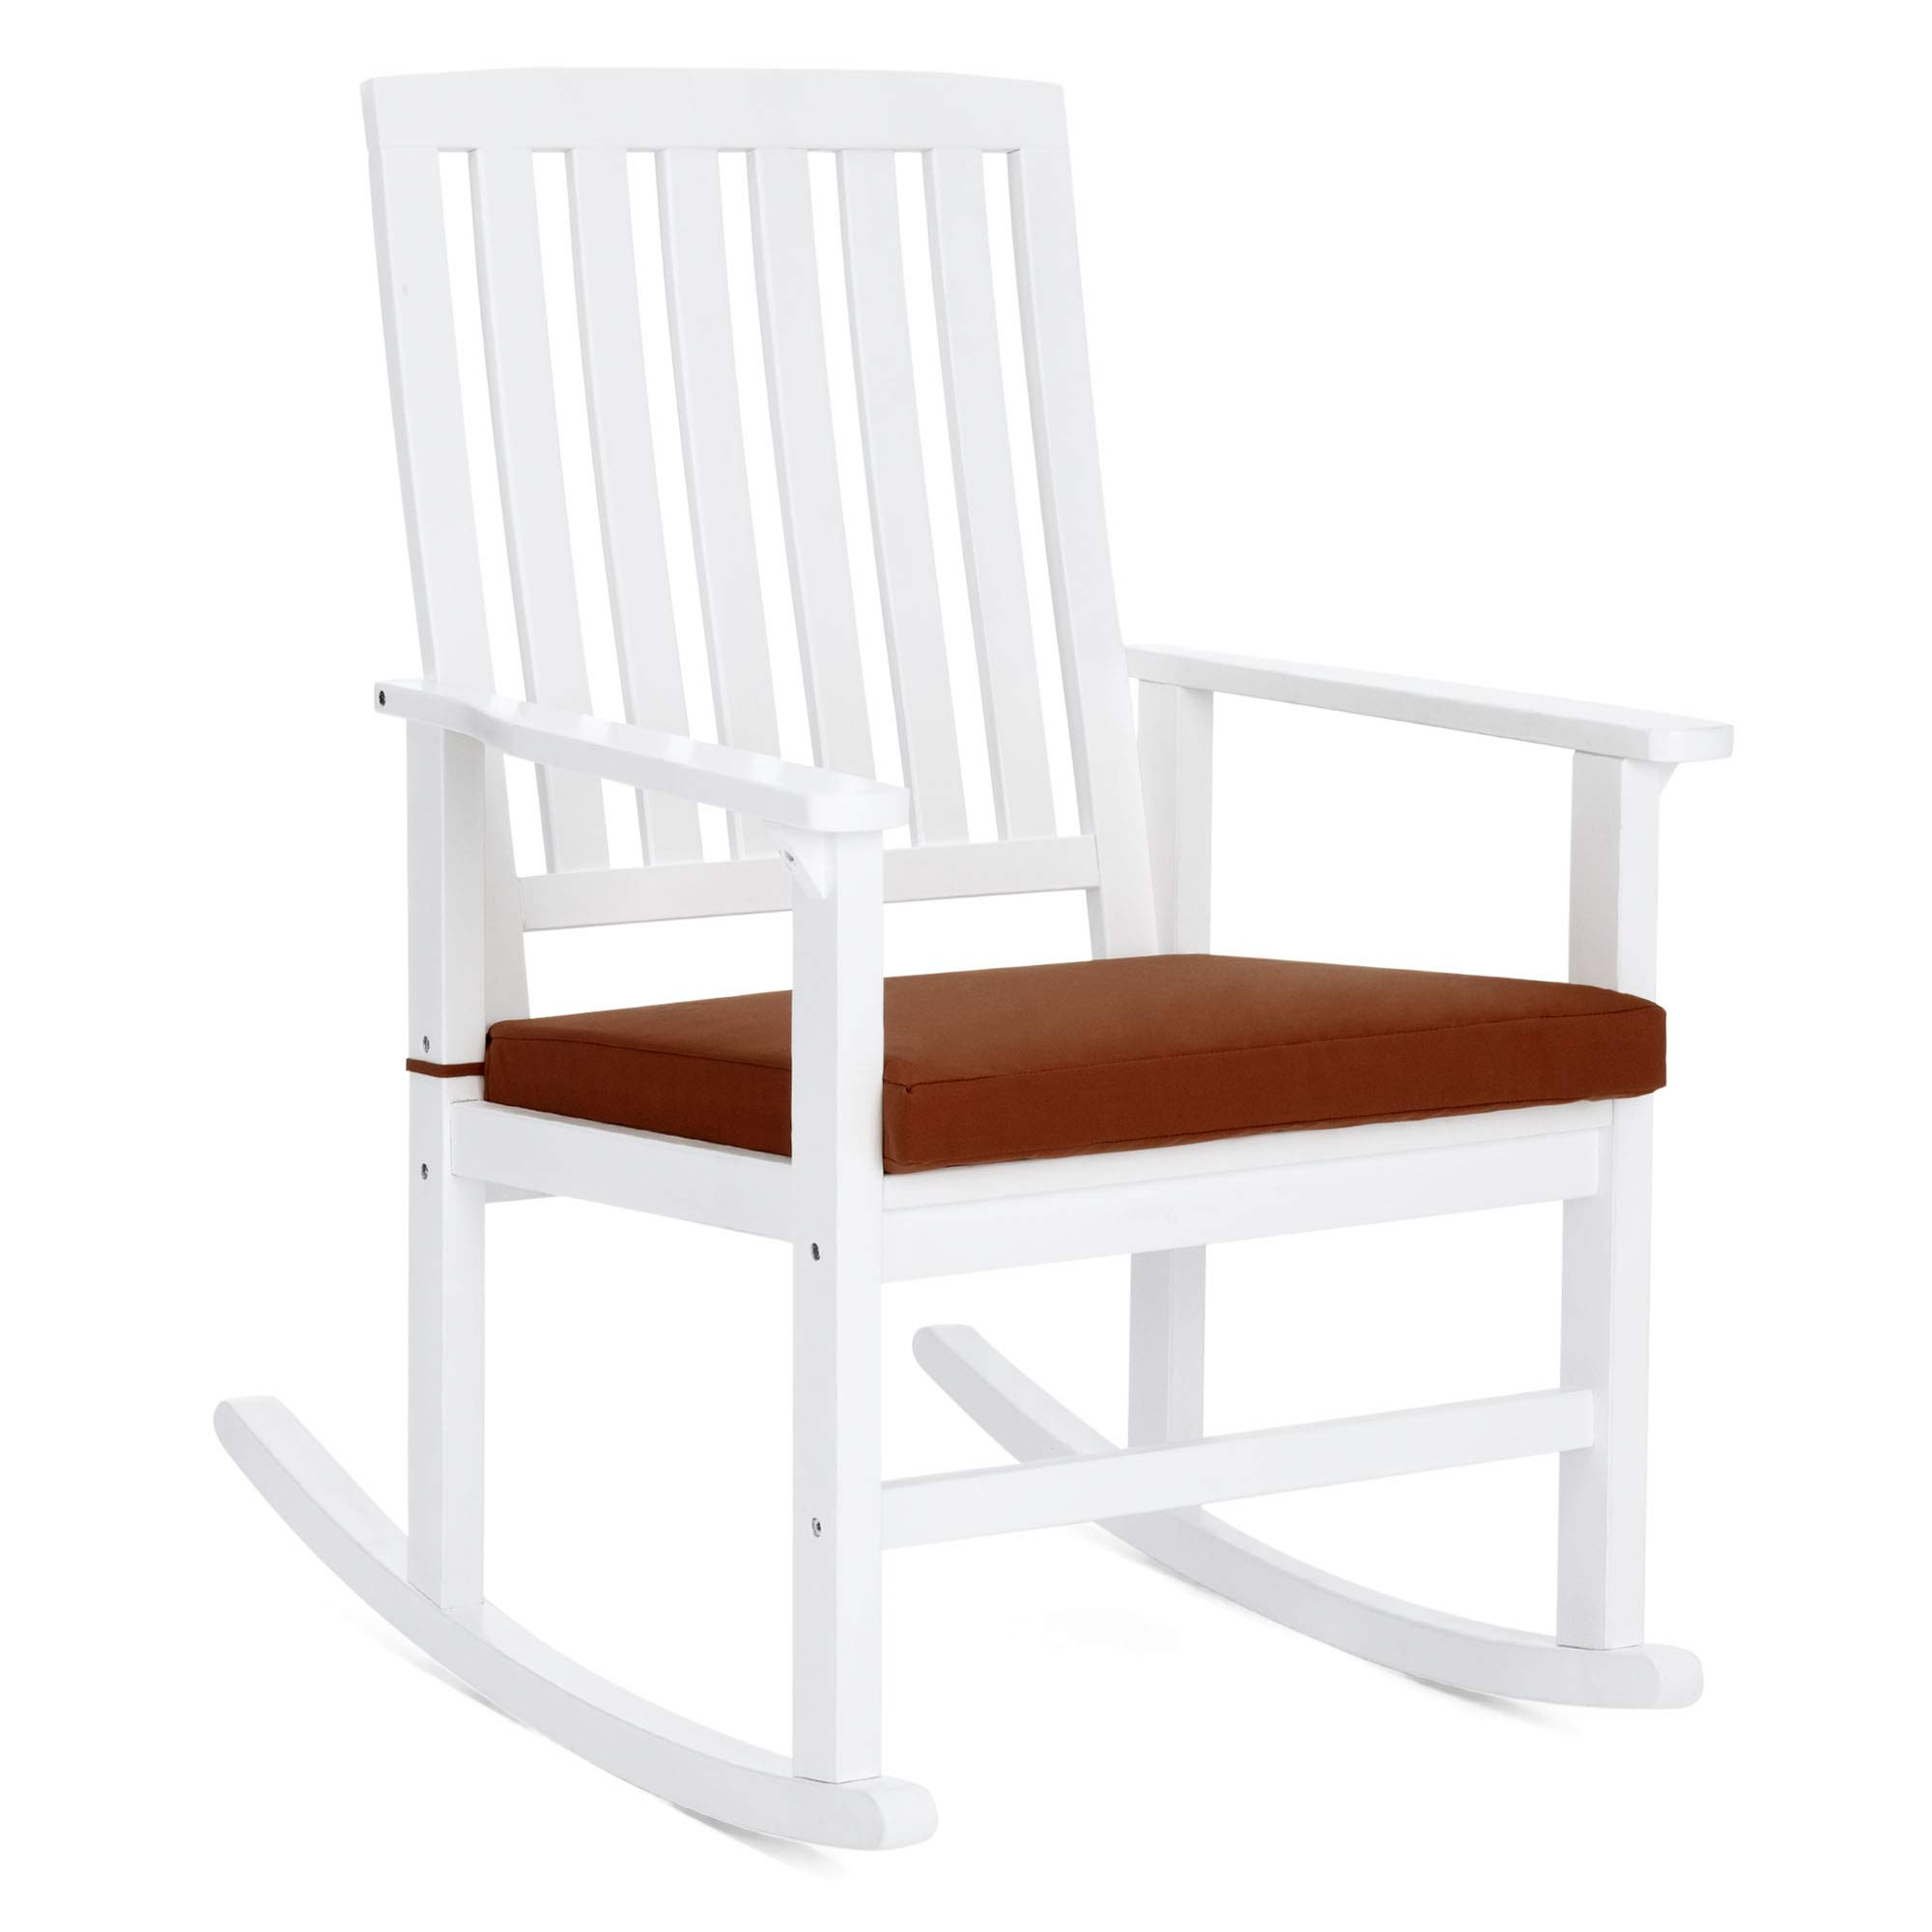 Best Choice Products Indoor Outdoor Wooden Patio Rocking Chair Porch Glider w/Seat Cushion, White/Red by Best Choice Products